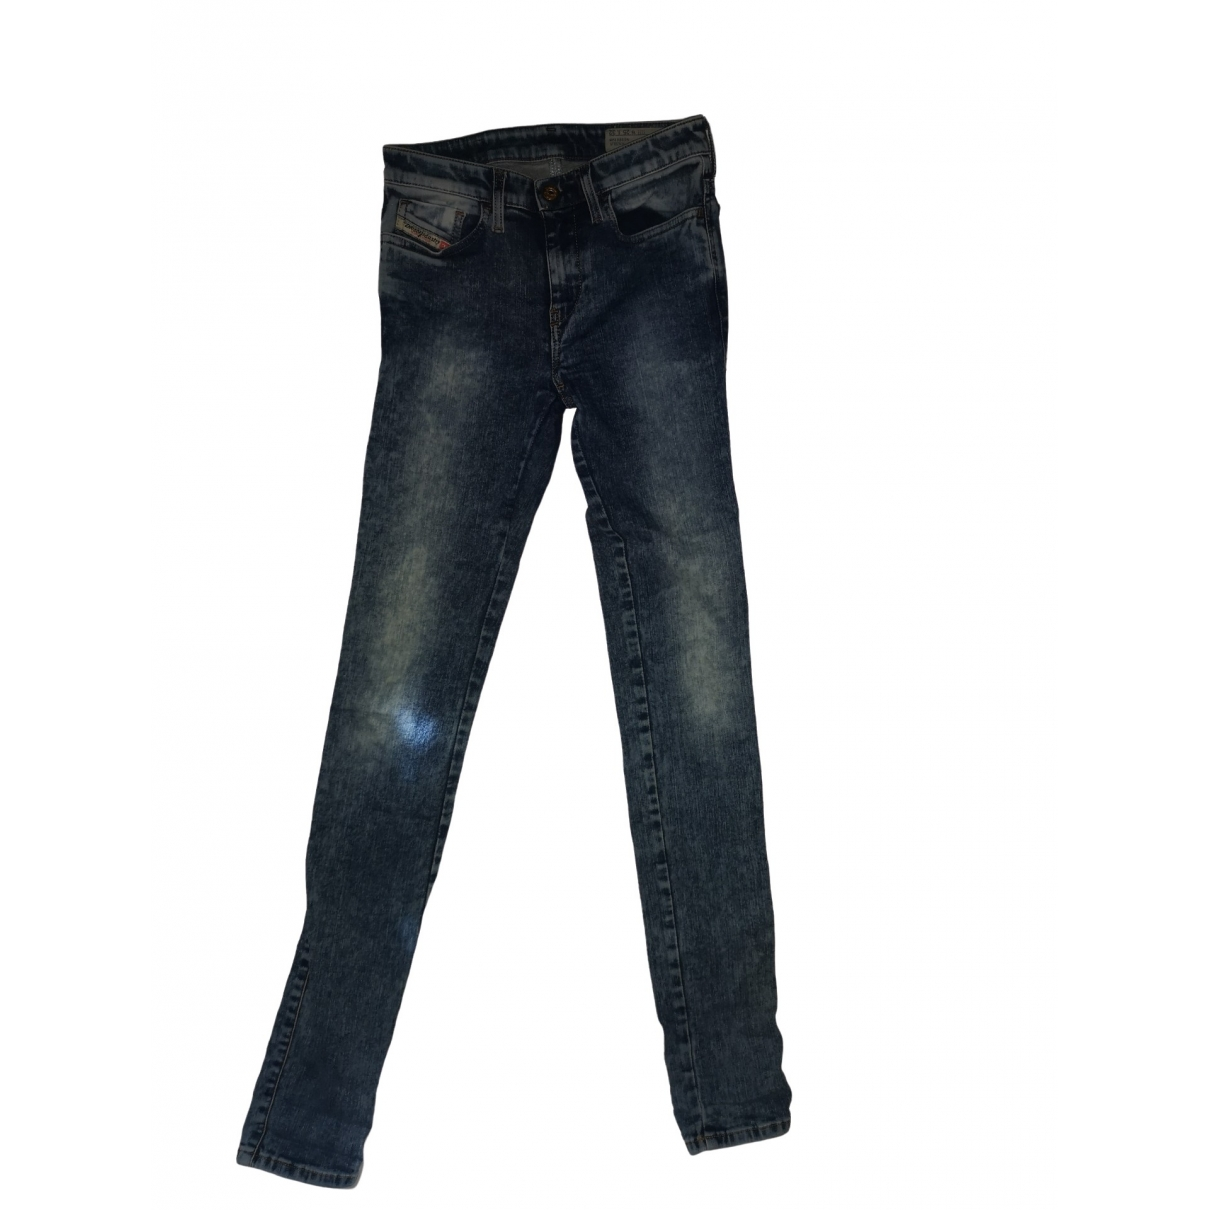 Diesel \N Blue Cotton - elasthane Jeans for Women 35 FR